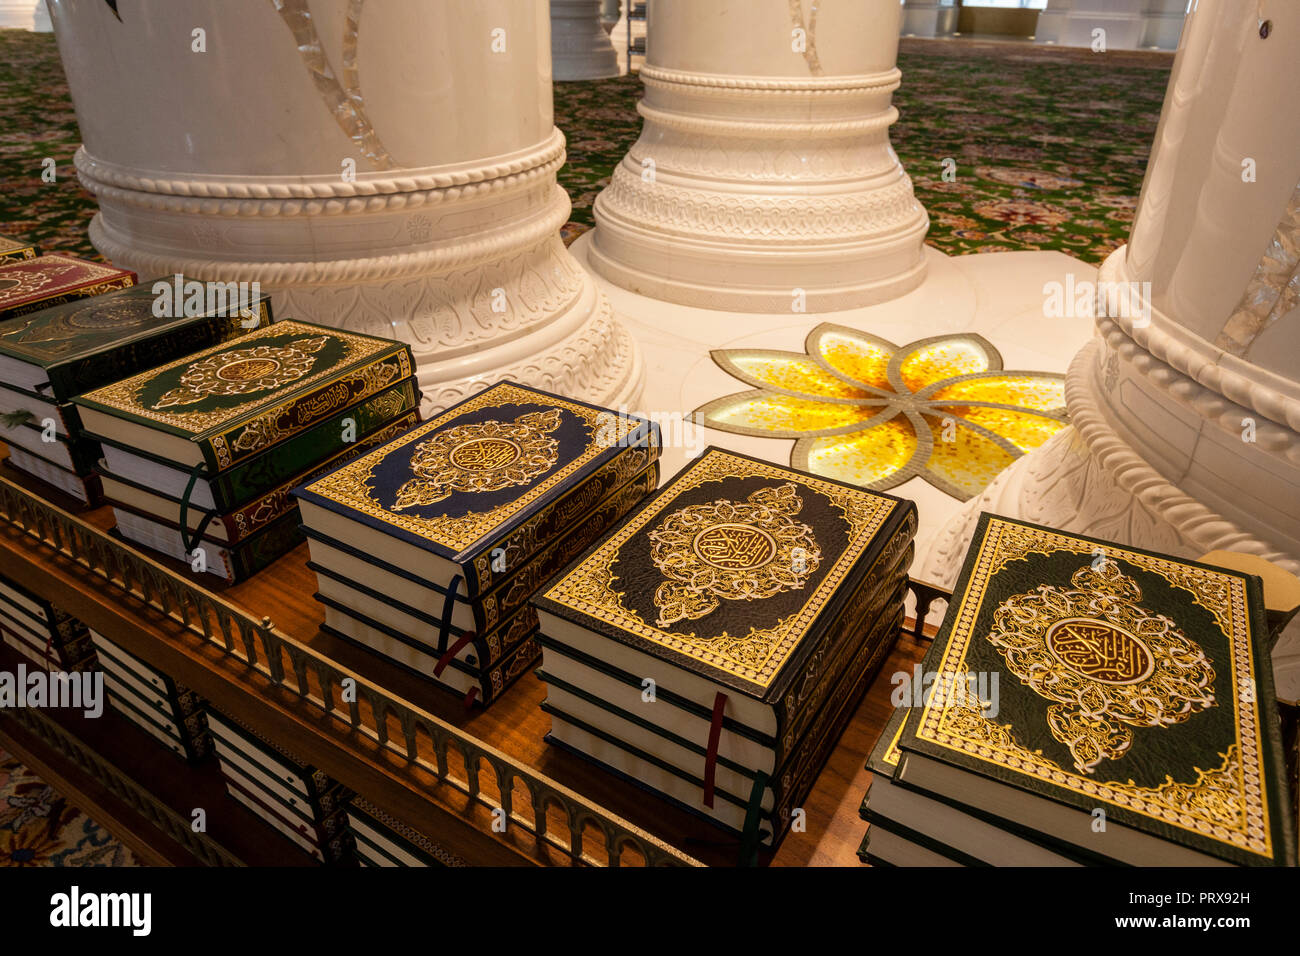 Copies Of The Qur An Koran In The Sheikh Zayed Grand Mosque In Abu